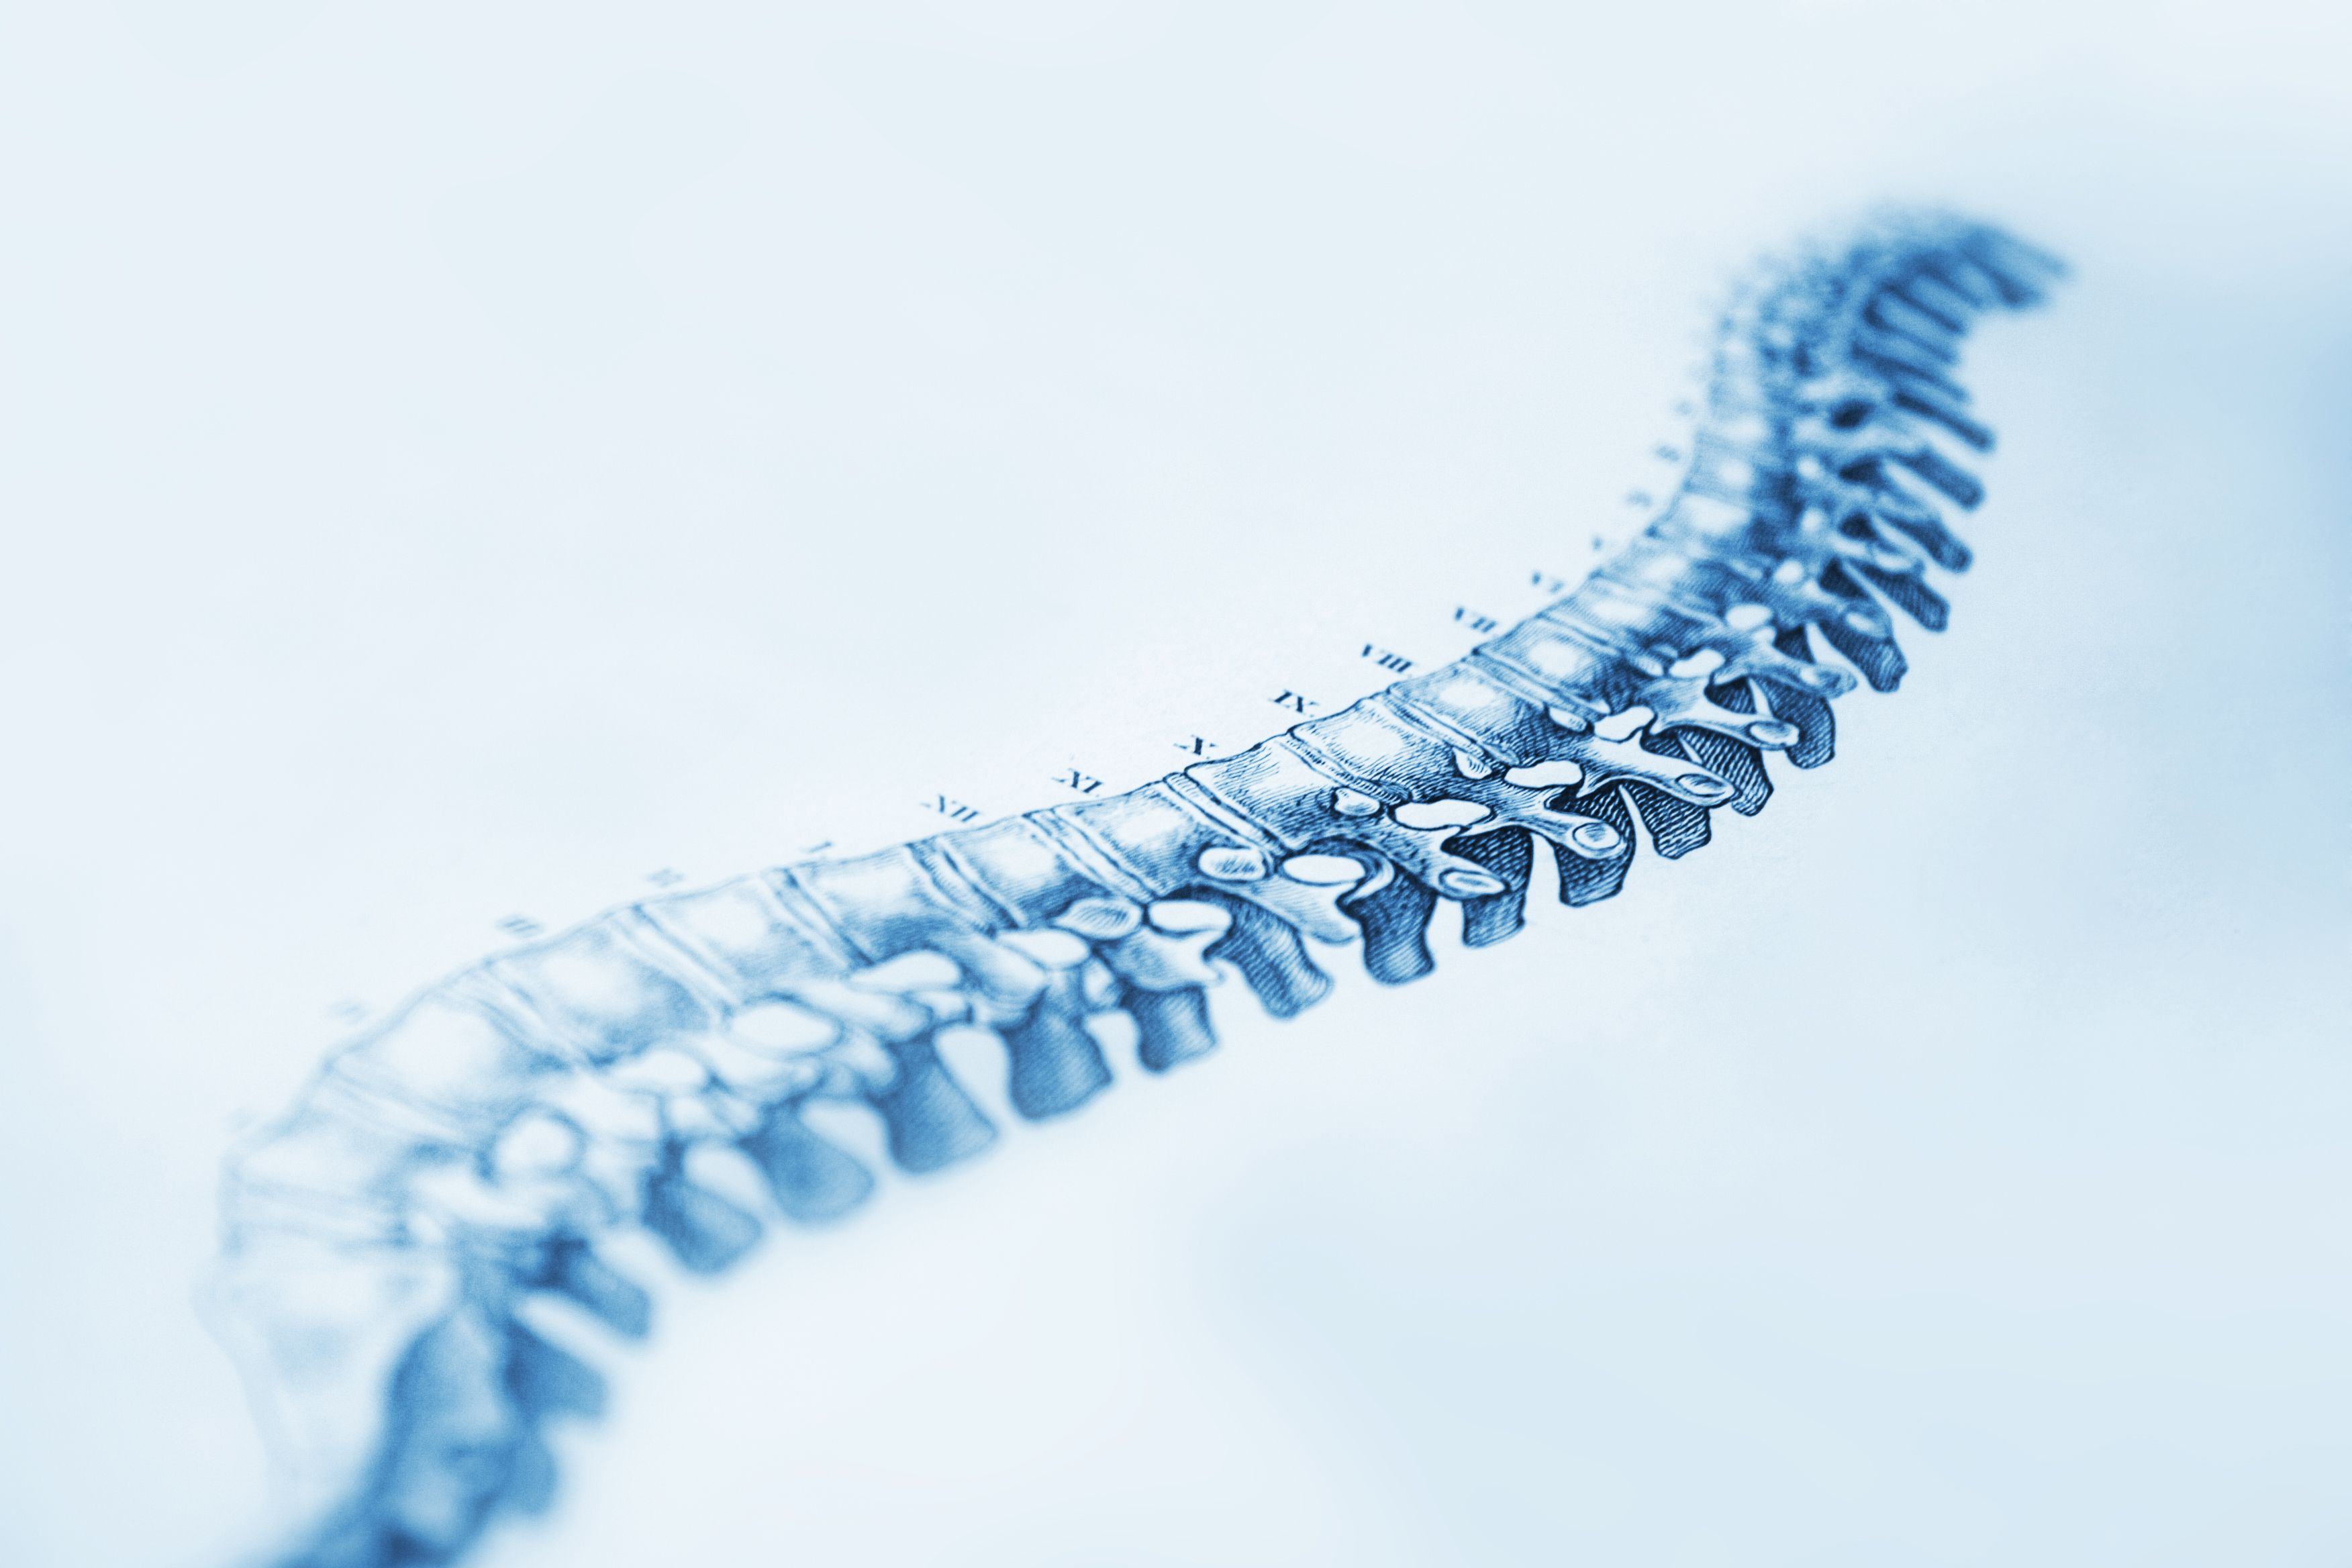 An image of the human spinal column